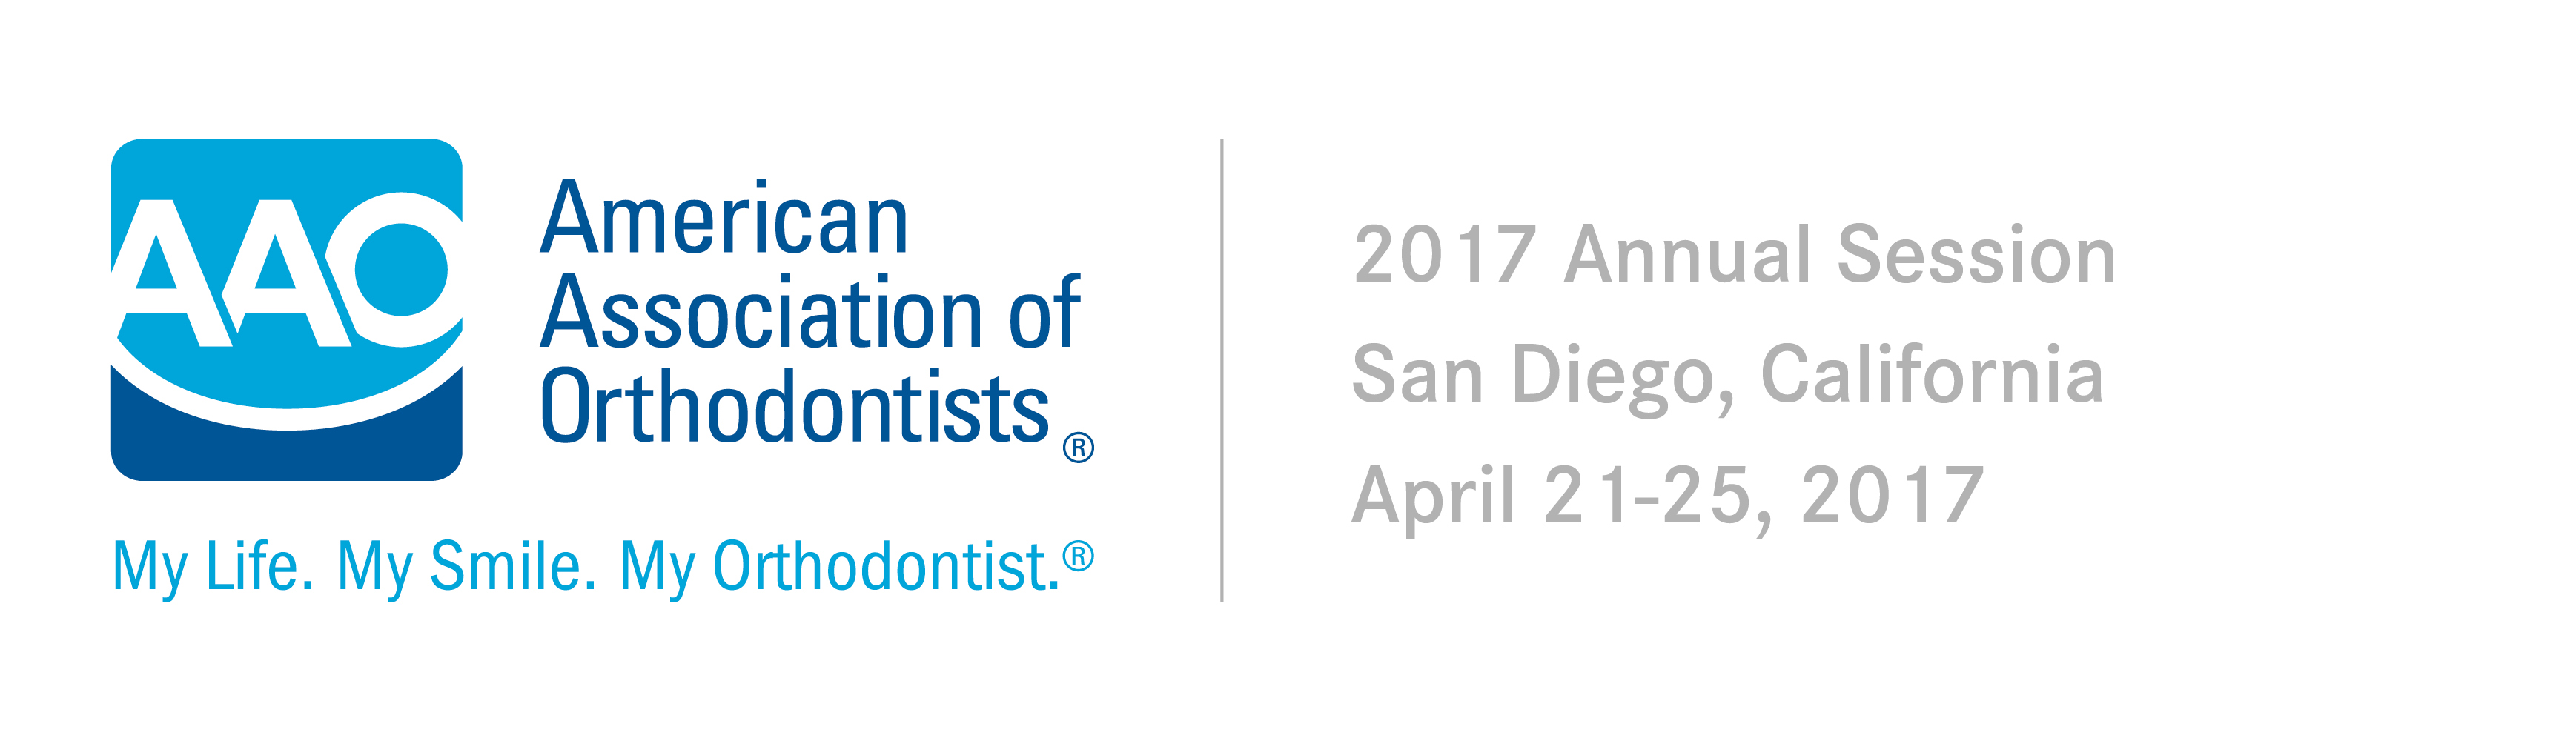 The American Association of Orthodontists Annual Session